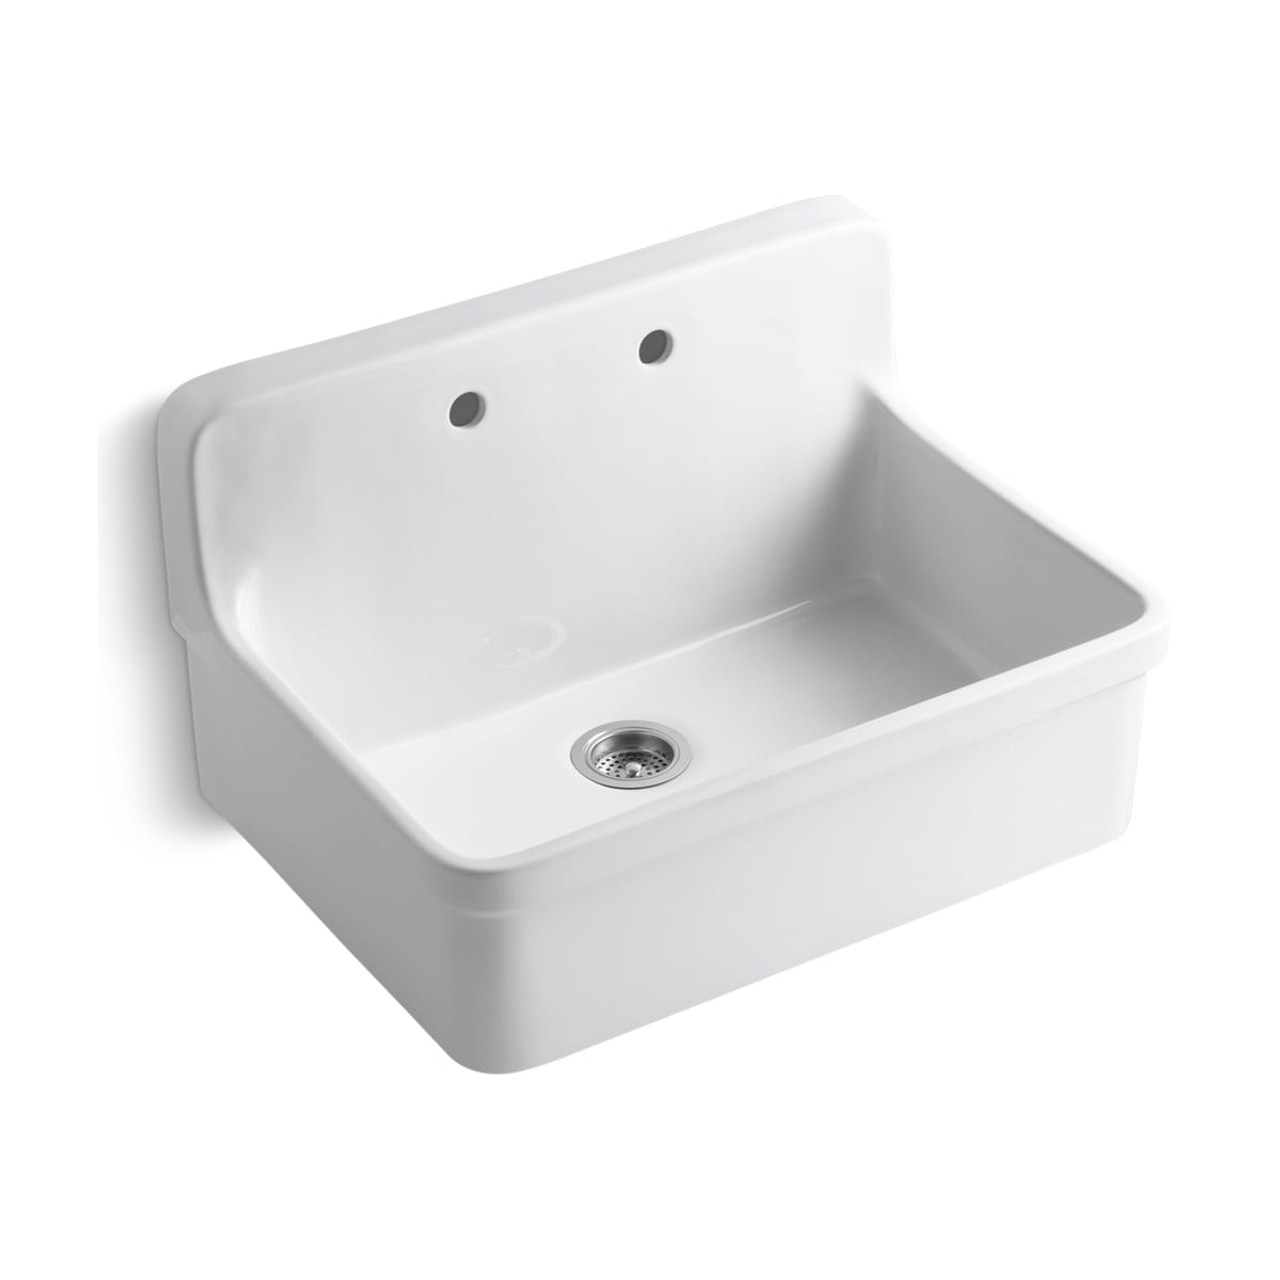 kohler gilford 30 single basin wall mount top mount kitchen sink with apron front